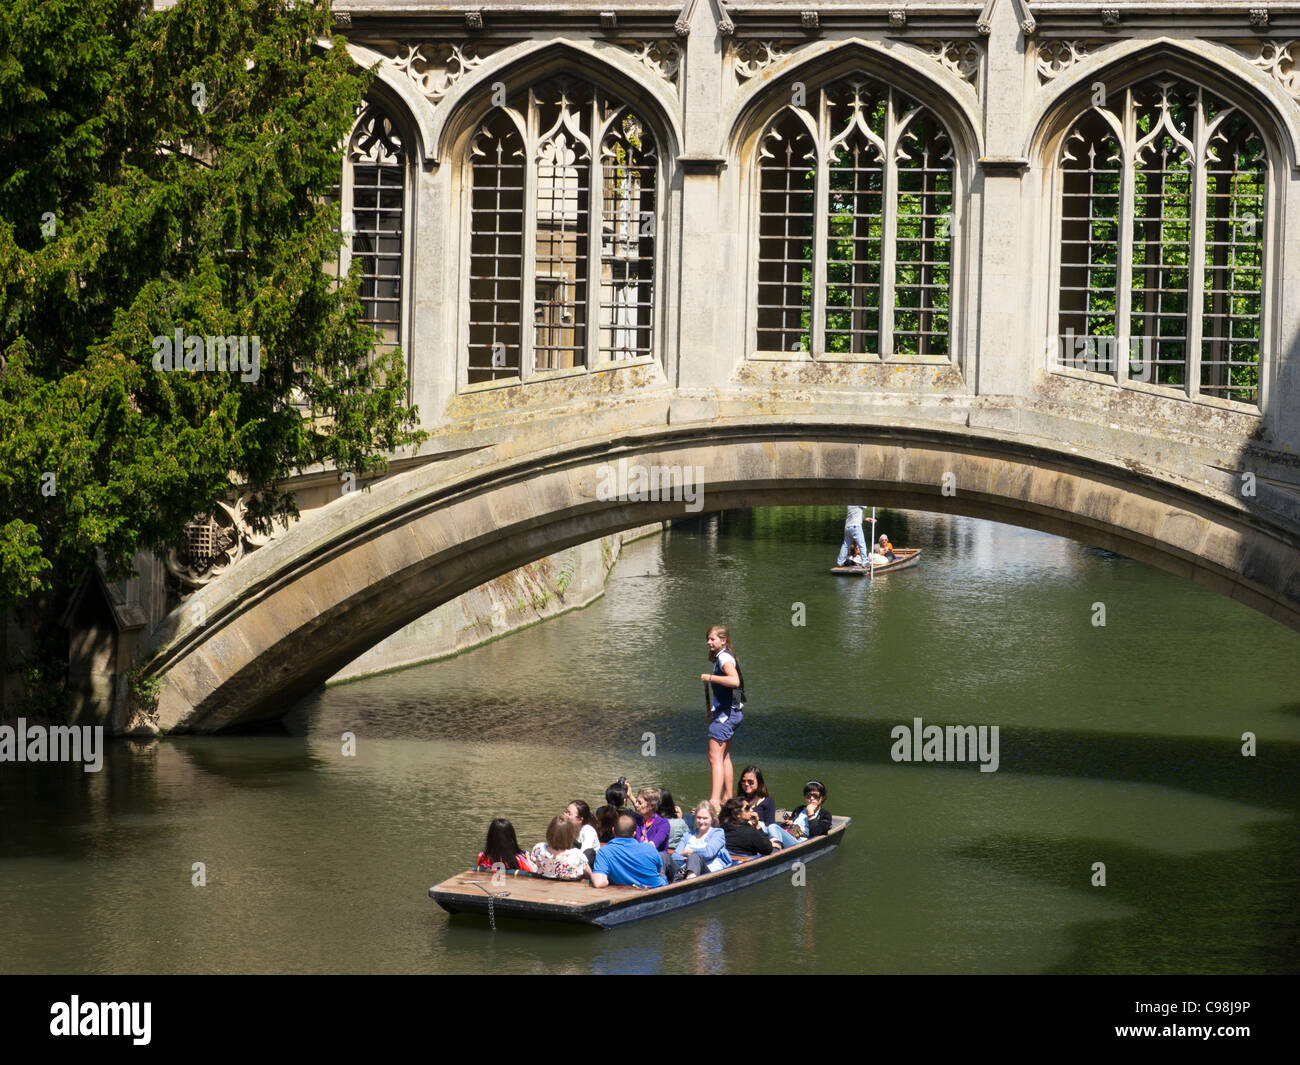 Punting Beneath the Bridge of Sighs, St Johns College, Cambridge. - Stock Image